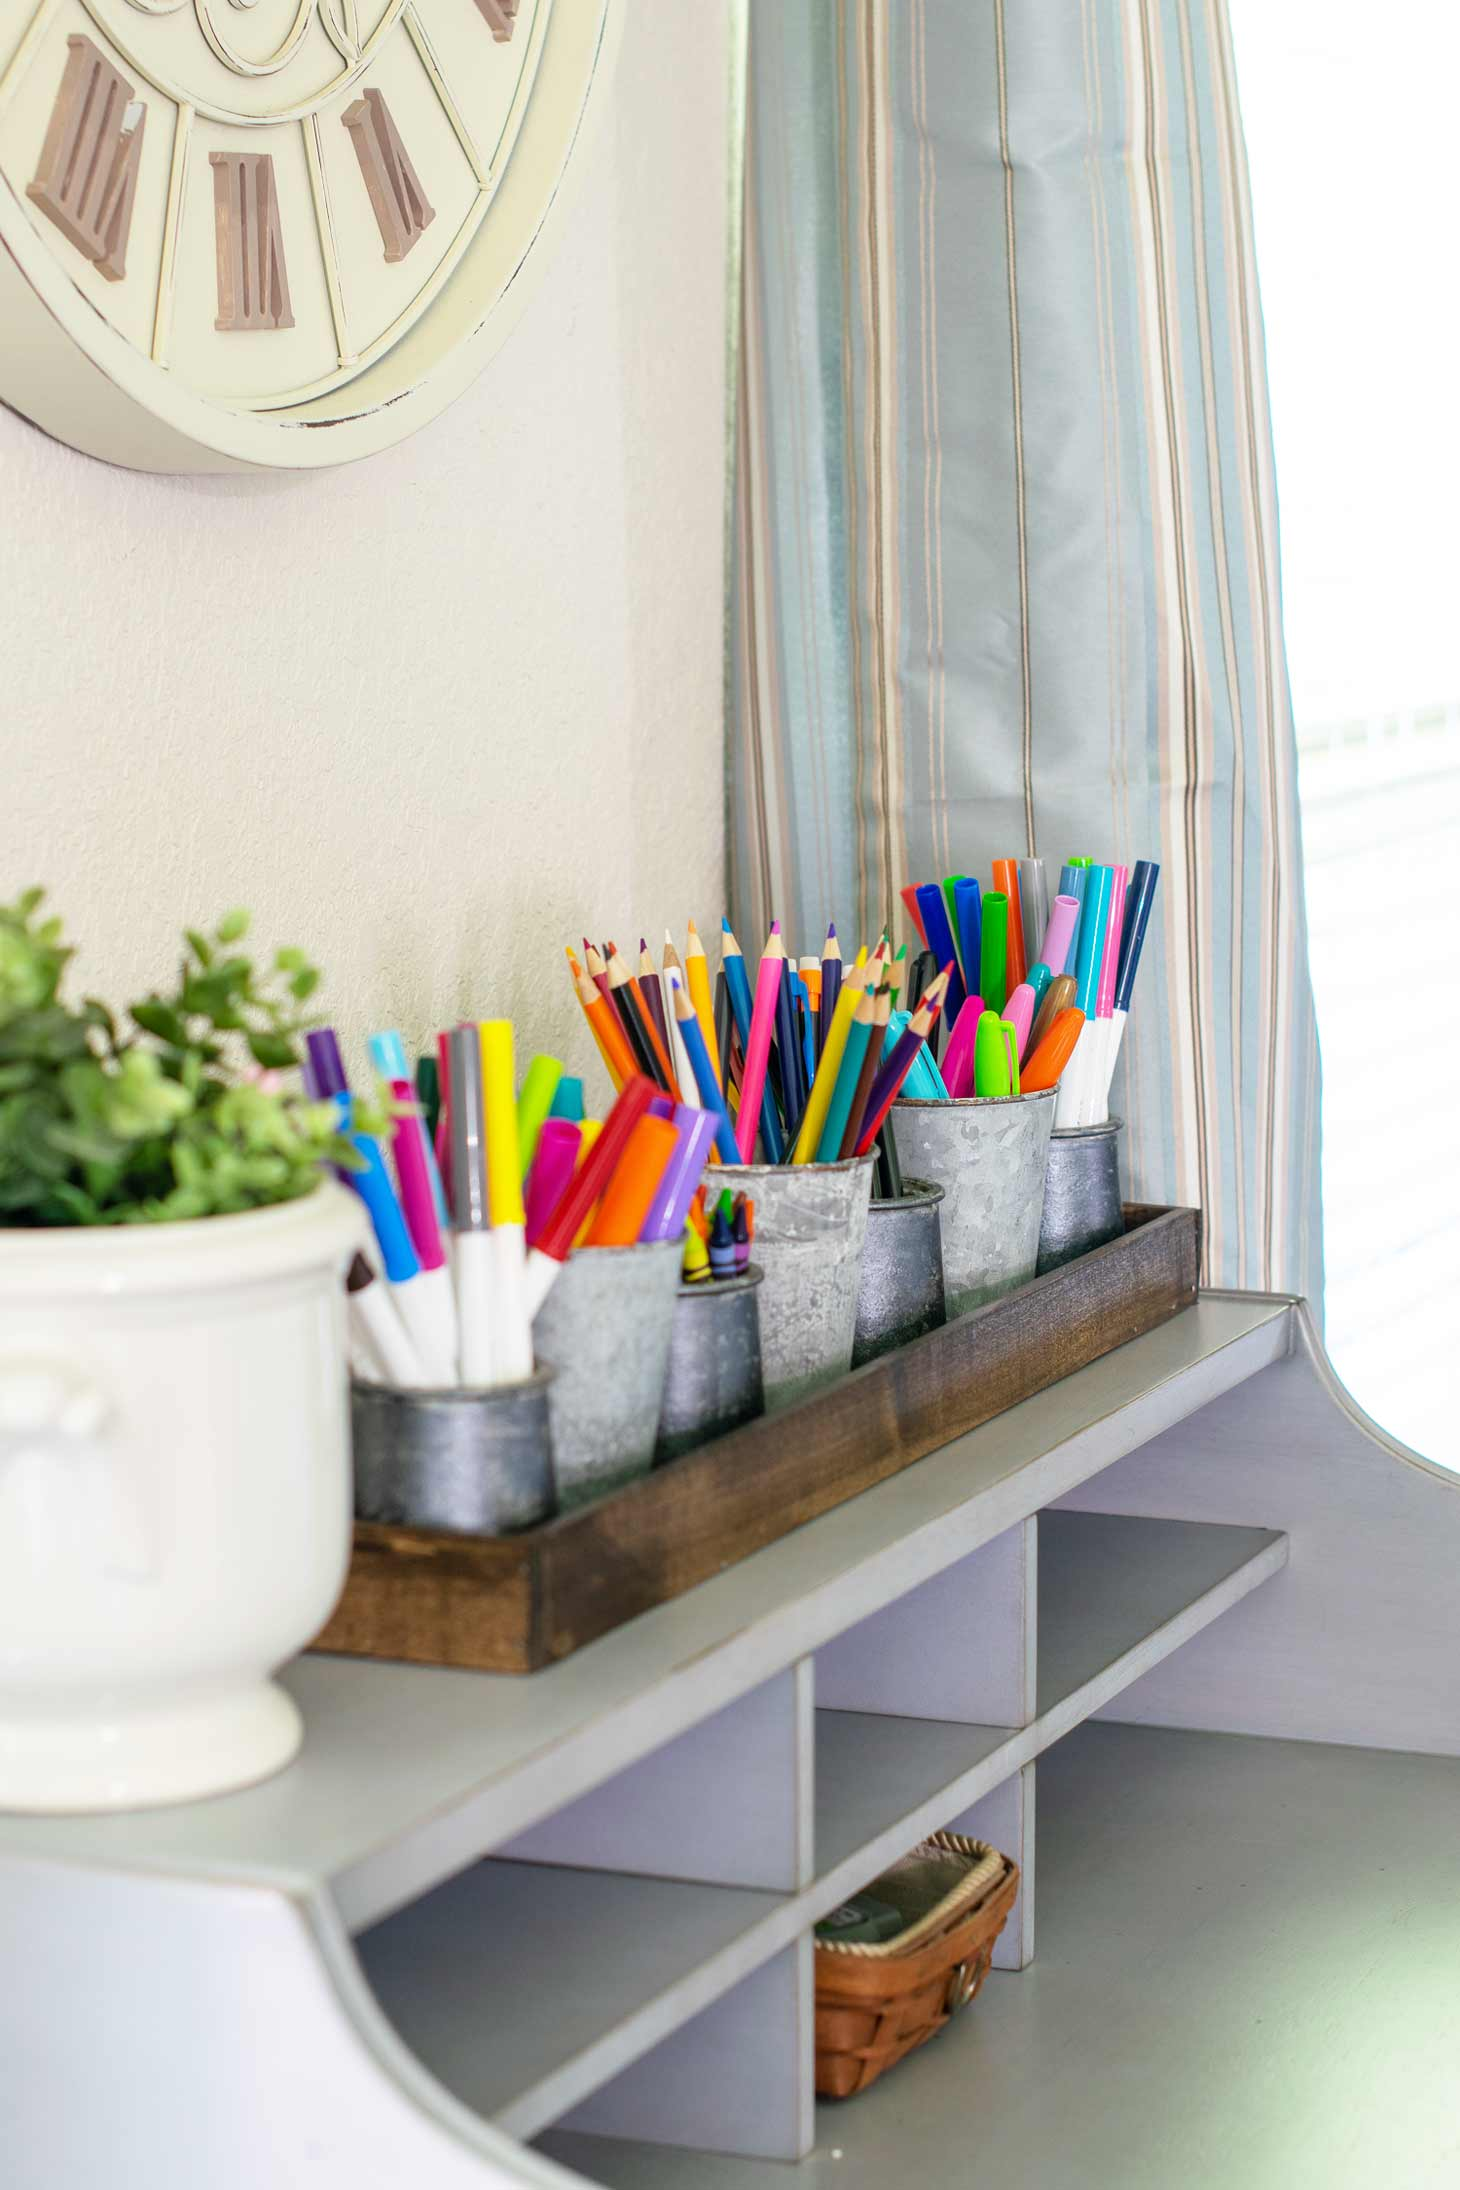 keep students school supplies organized in our jars